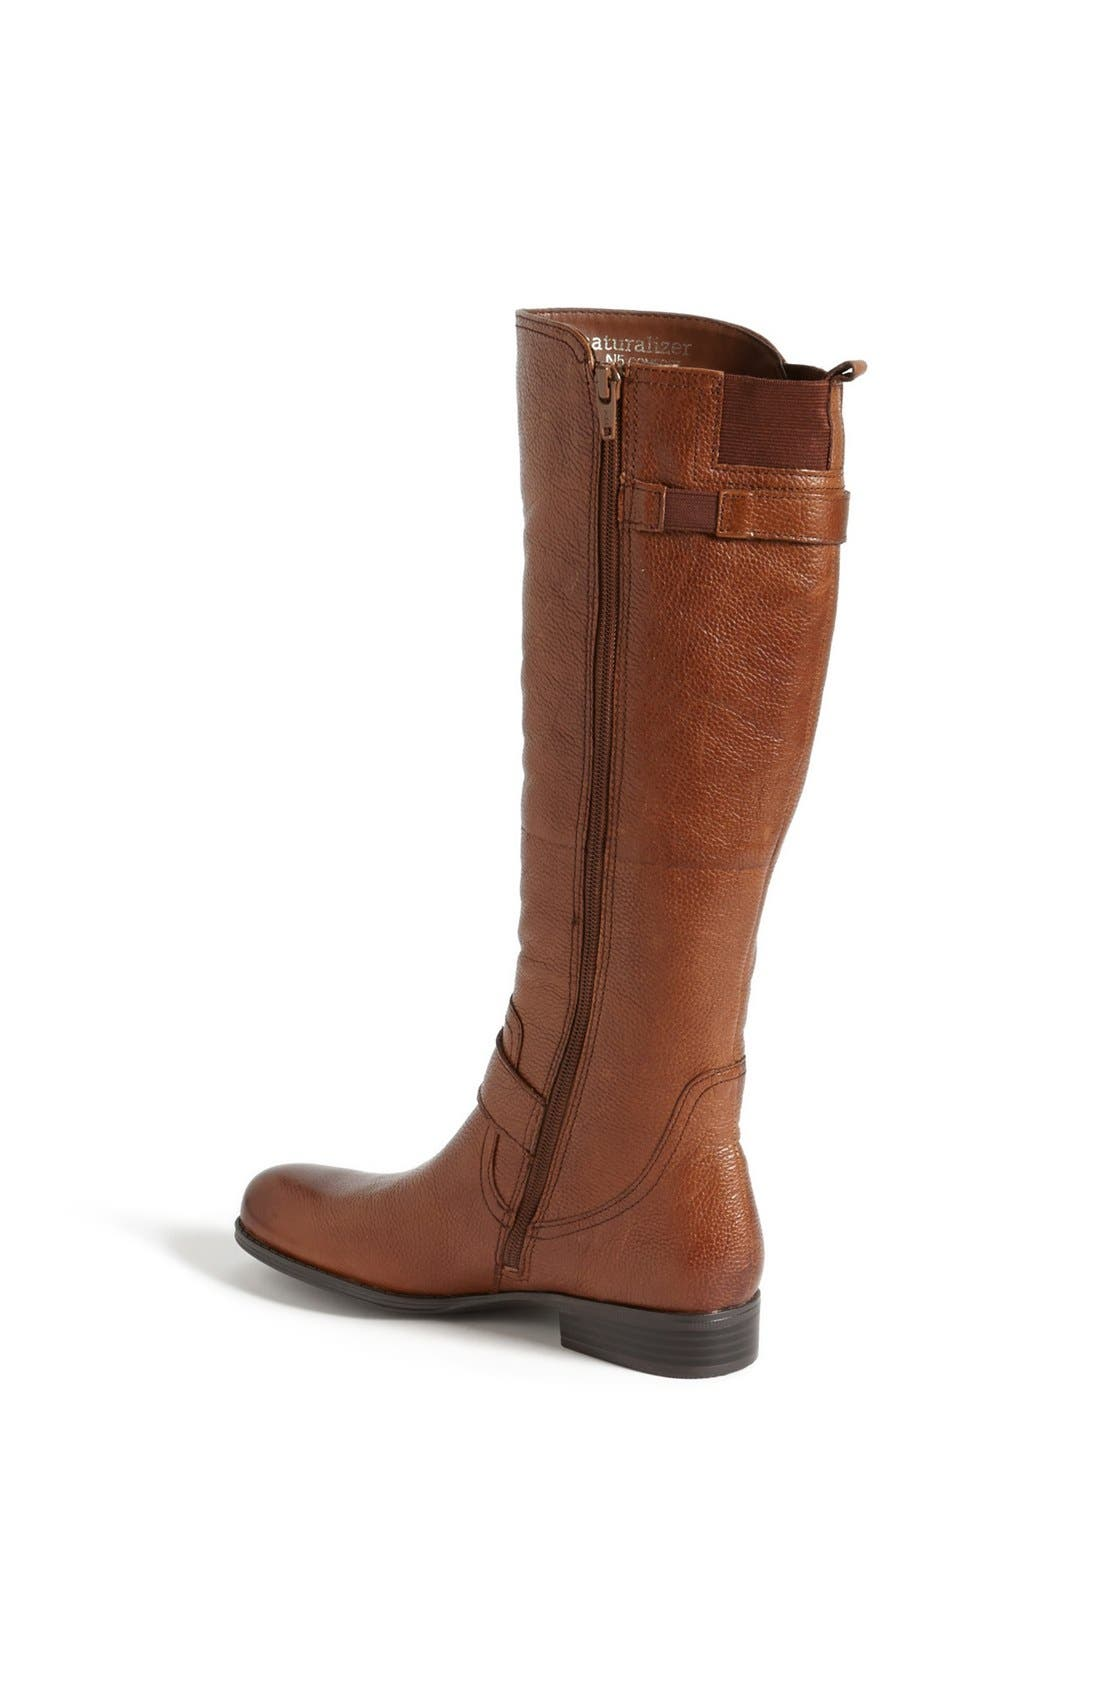 Alternate Image 2  - Naturalizer 'Jersey' Leather Riding Boot (Wide Calf) (Online Only)